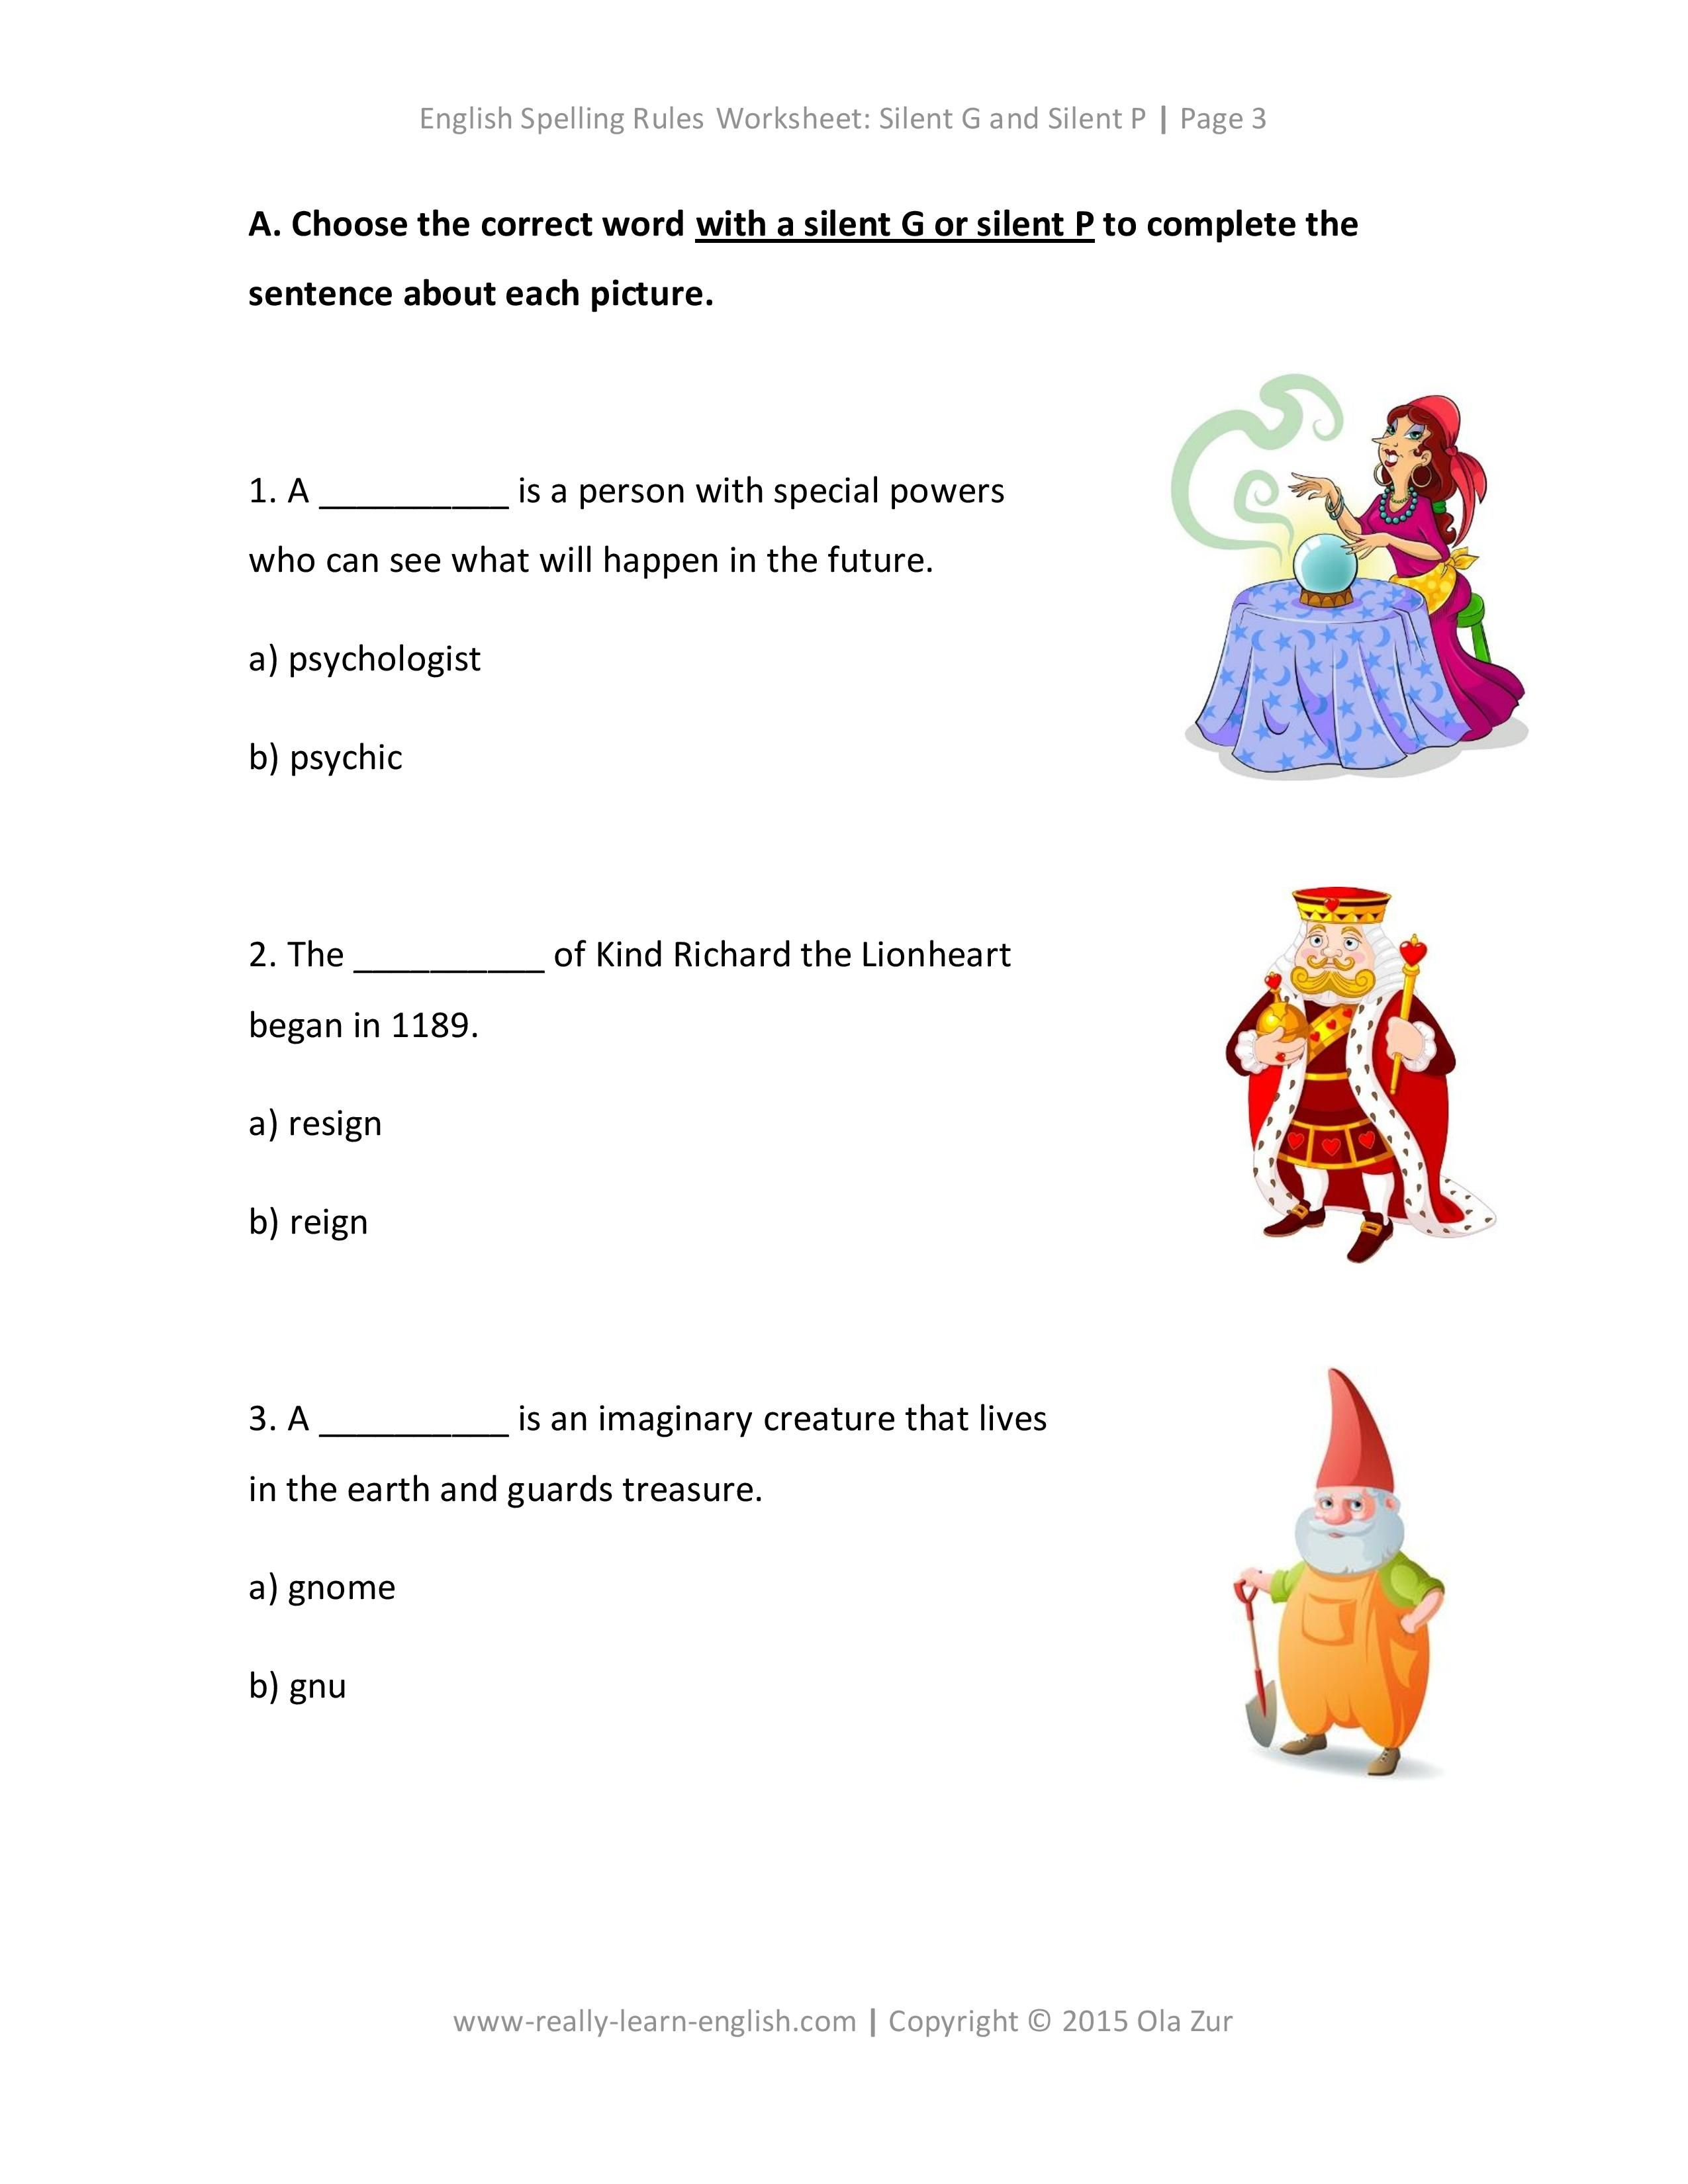 English spelling rules worksheets for silent g and silent p english spelling rules worksheets for silent g and silent p robcynllc Choice Image